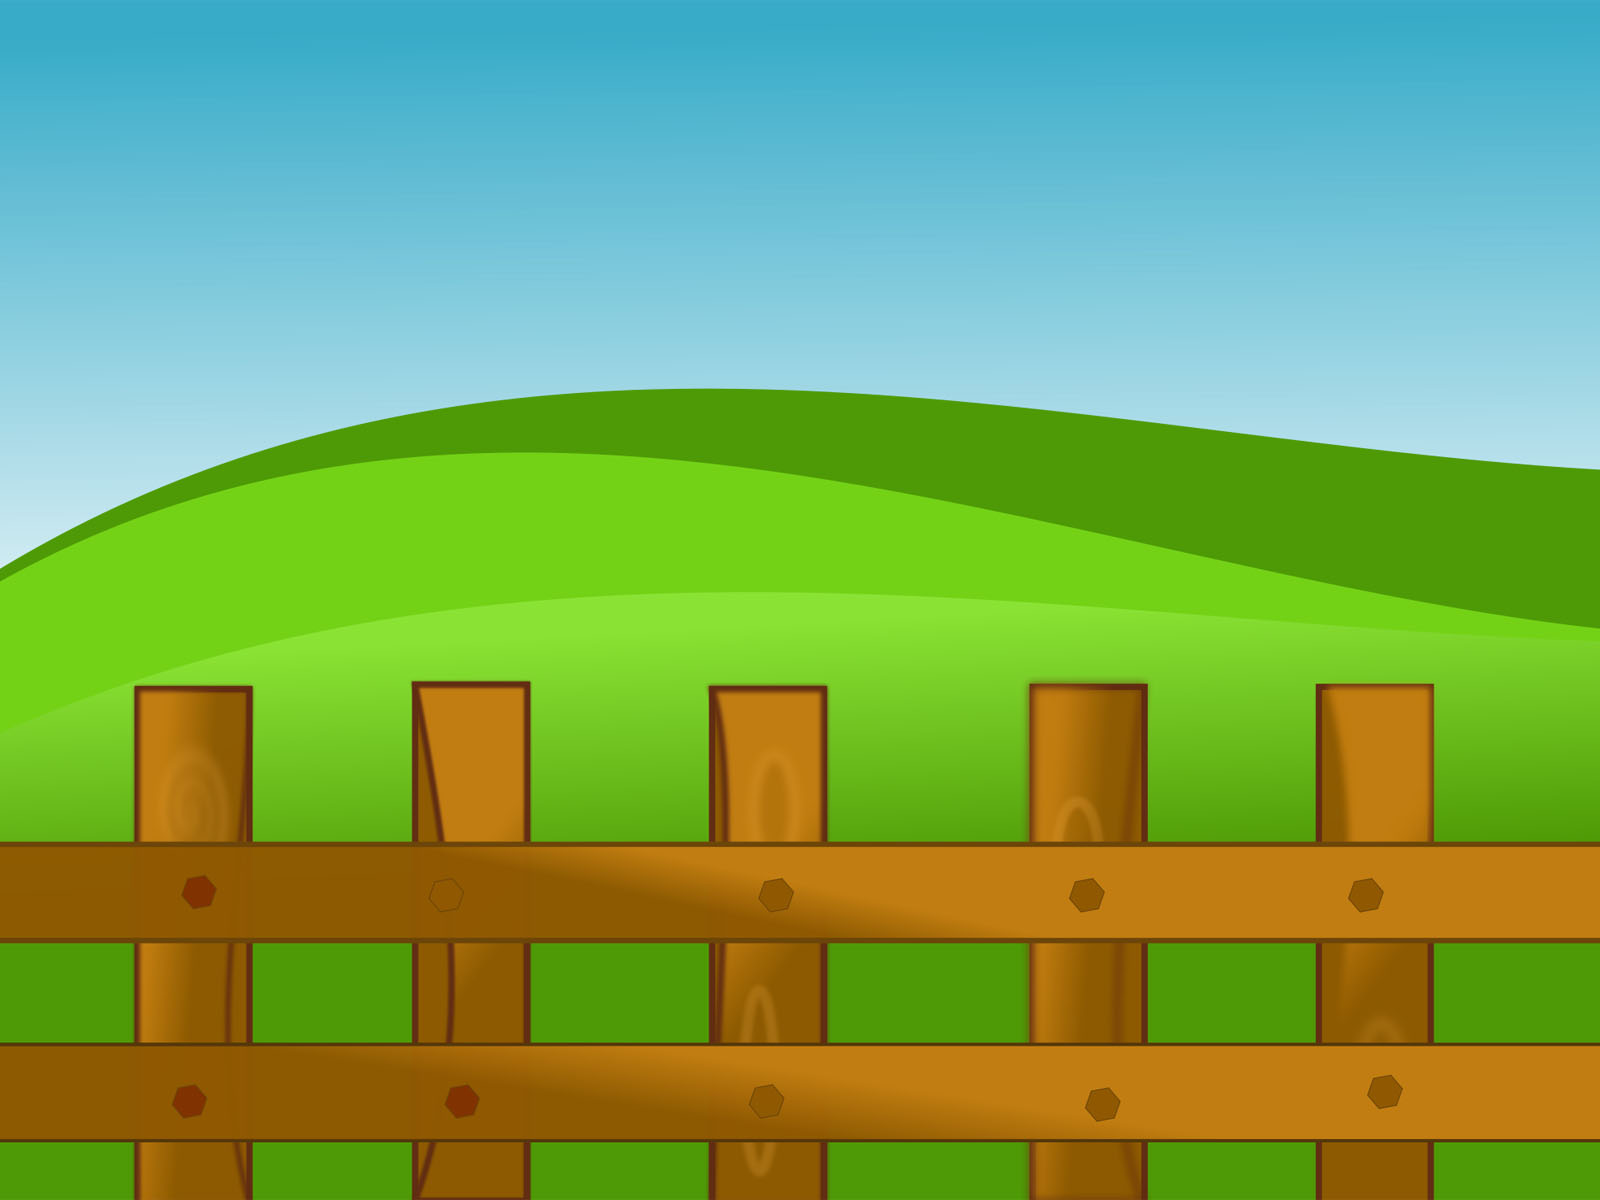 Fence Background Wallpaper : Agriculture Farm Fence Backgrounds - Nature - PPT Backgrounds